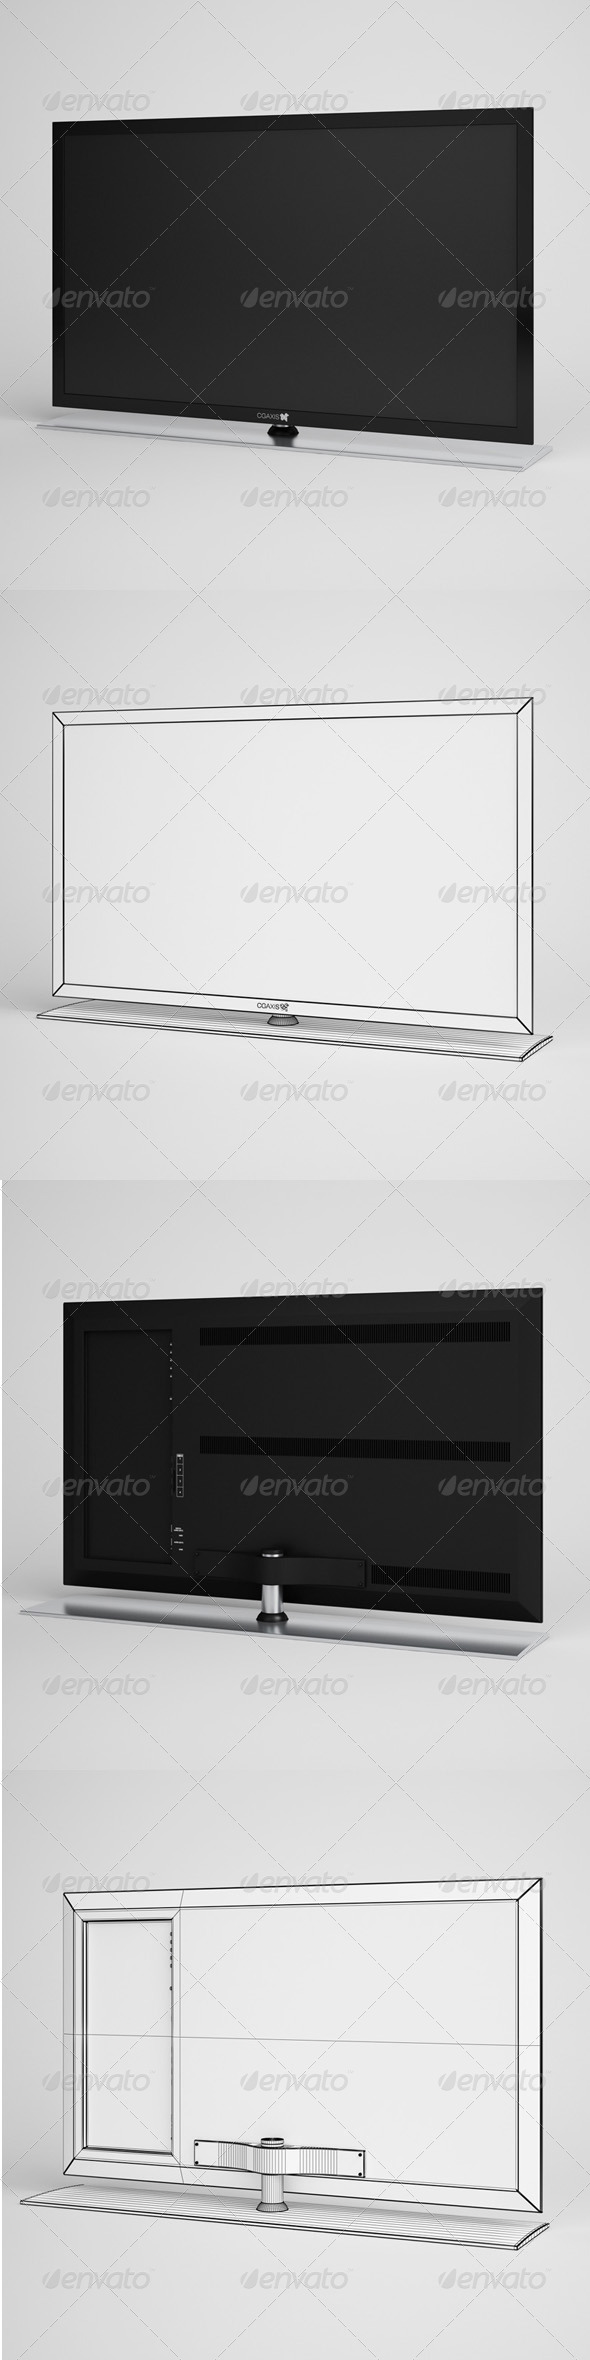 CGAxis Flatscreen TV Electronics 03 - 3DOcean Item for Sale